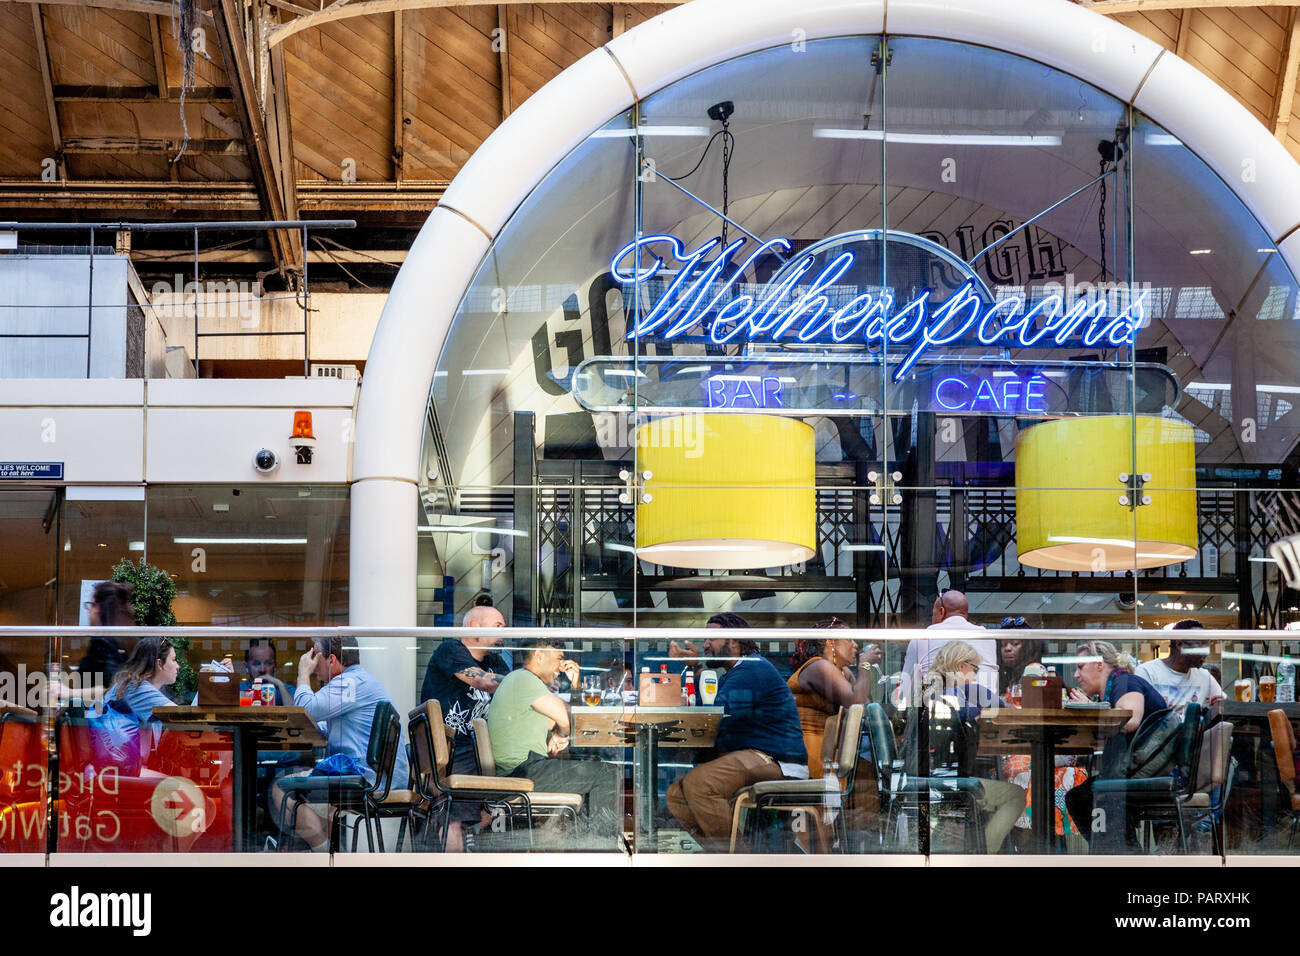 Wetherspoons Bar Stock Photos & Wetherspoons Bar Stock Images - Alamy